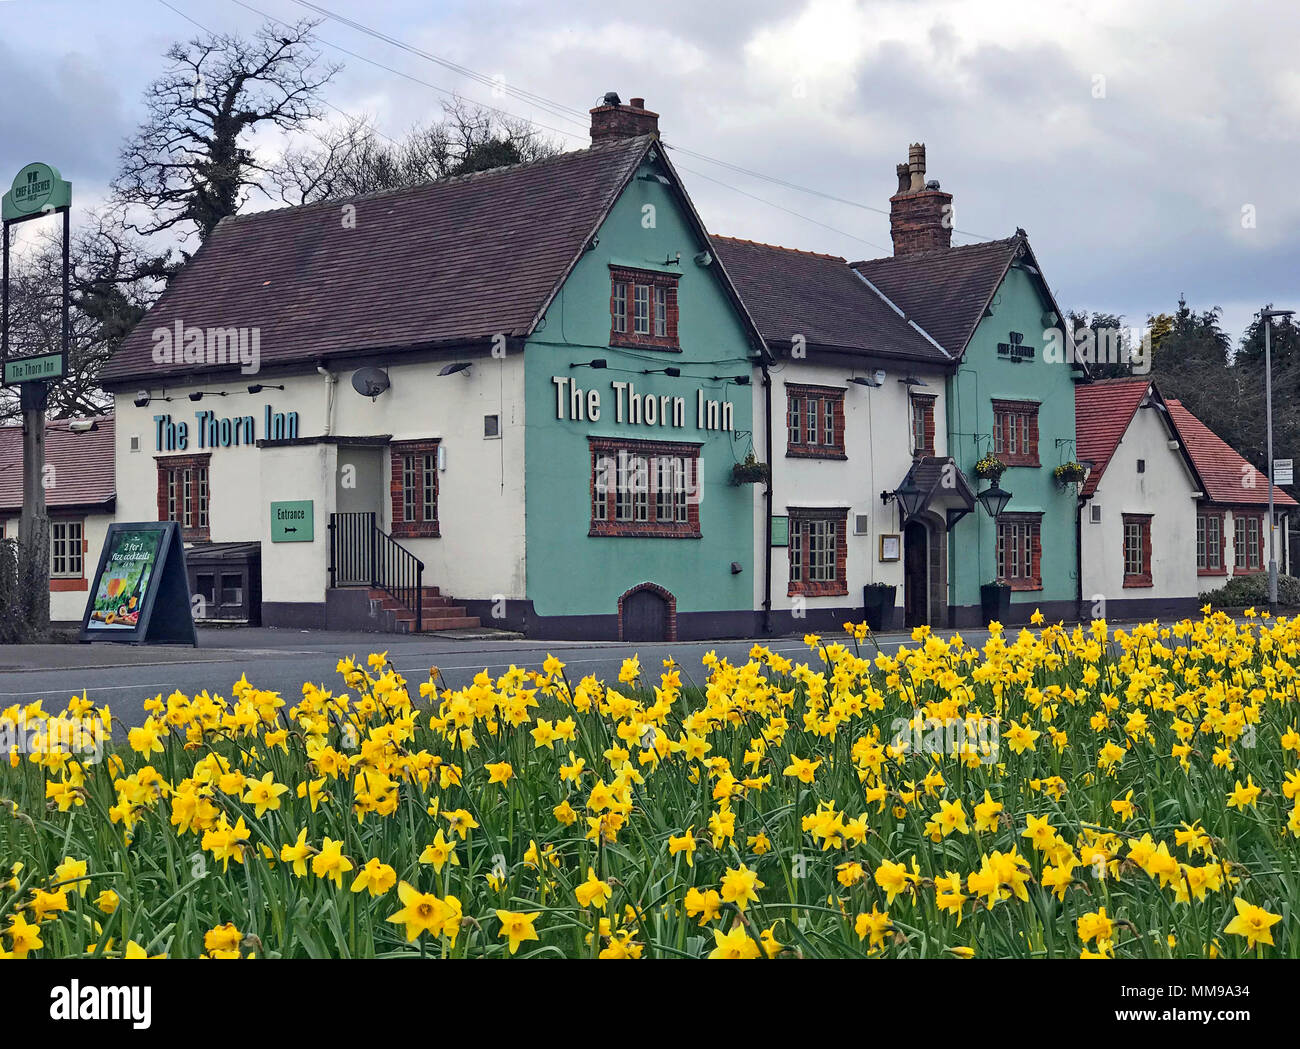 The Thorn Inn, Appleton Thorn, Warrington, Cheshire, England, UK with daffodils in spring Stock Photo